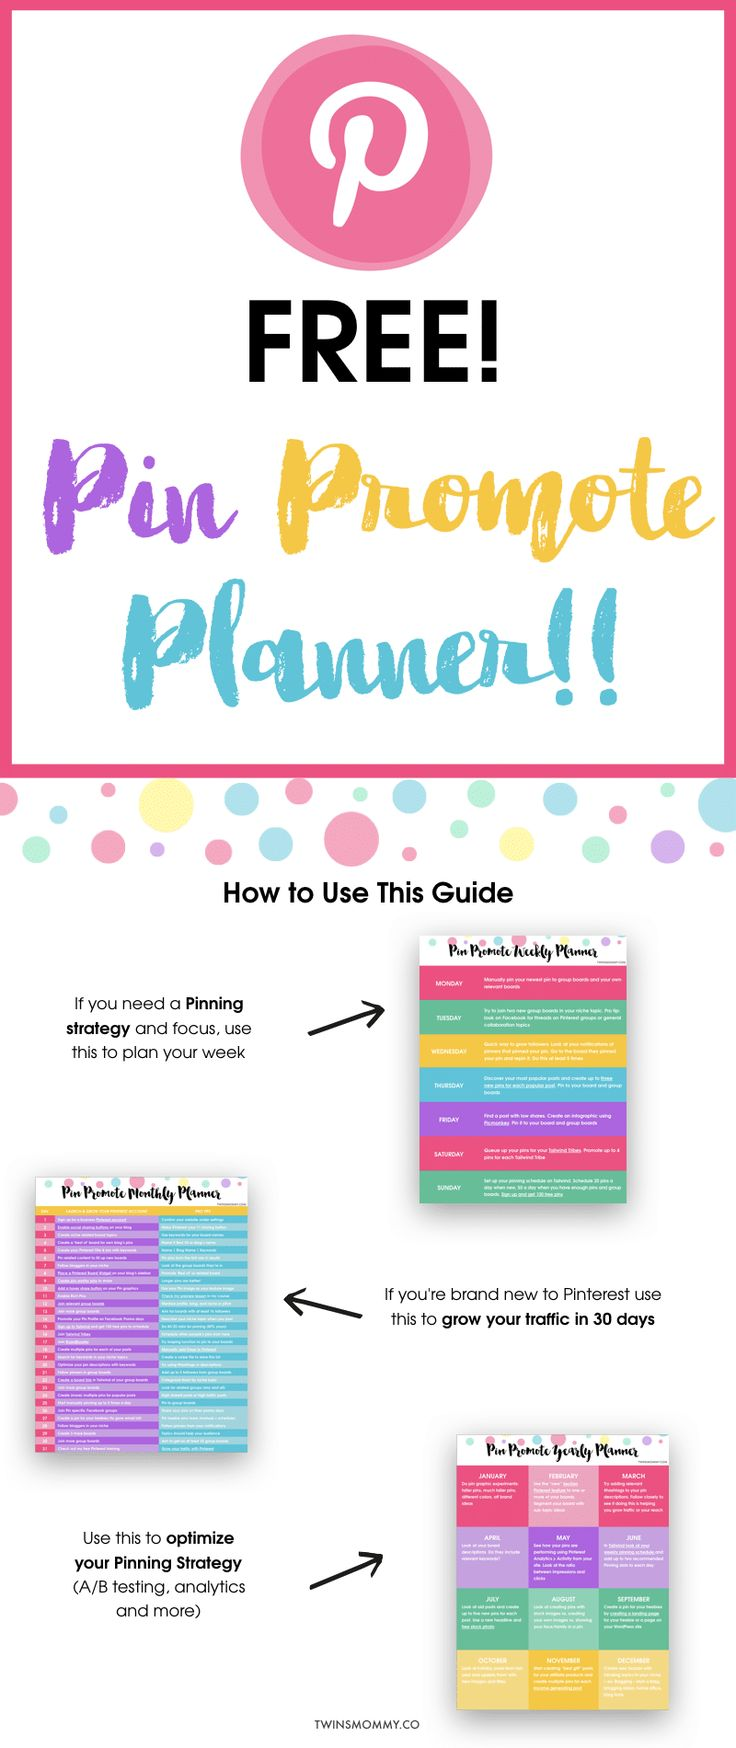 New to Pinterest marketing? Have no idea how to use Pinterest to grow your blog traffic? Pinterest marketing for bloggers comes in this Pinterest planner for you! Yay! Pin Promote Planner will help with Pinterest planning, Pinterest analytics, and more. This is a Pinterest planner printable for free!